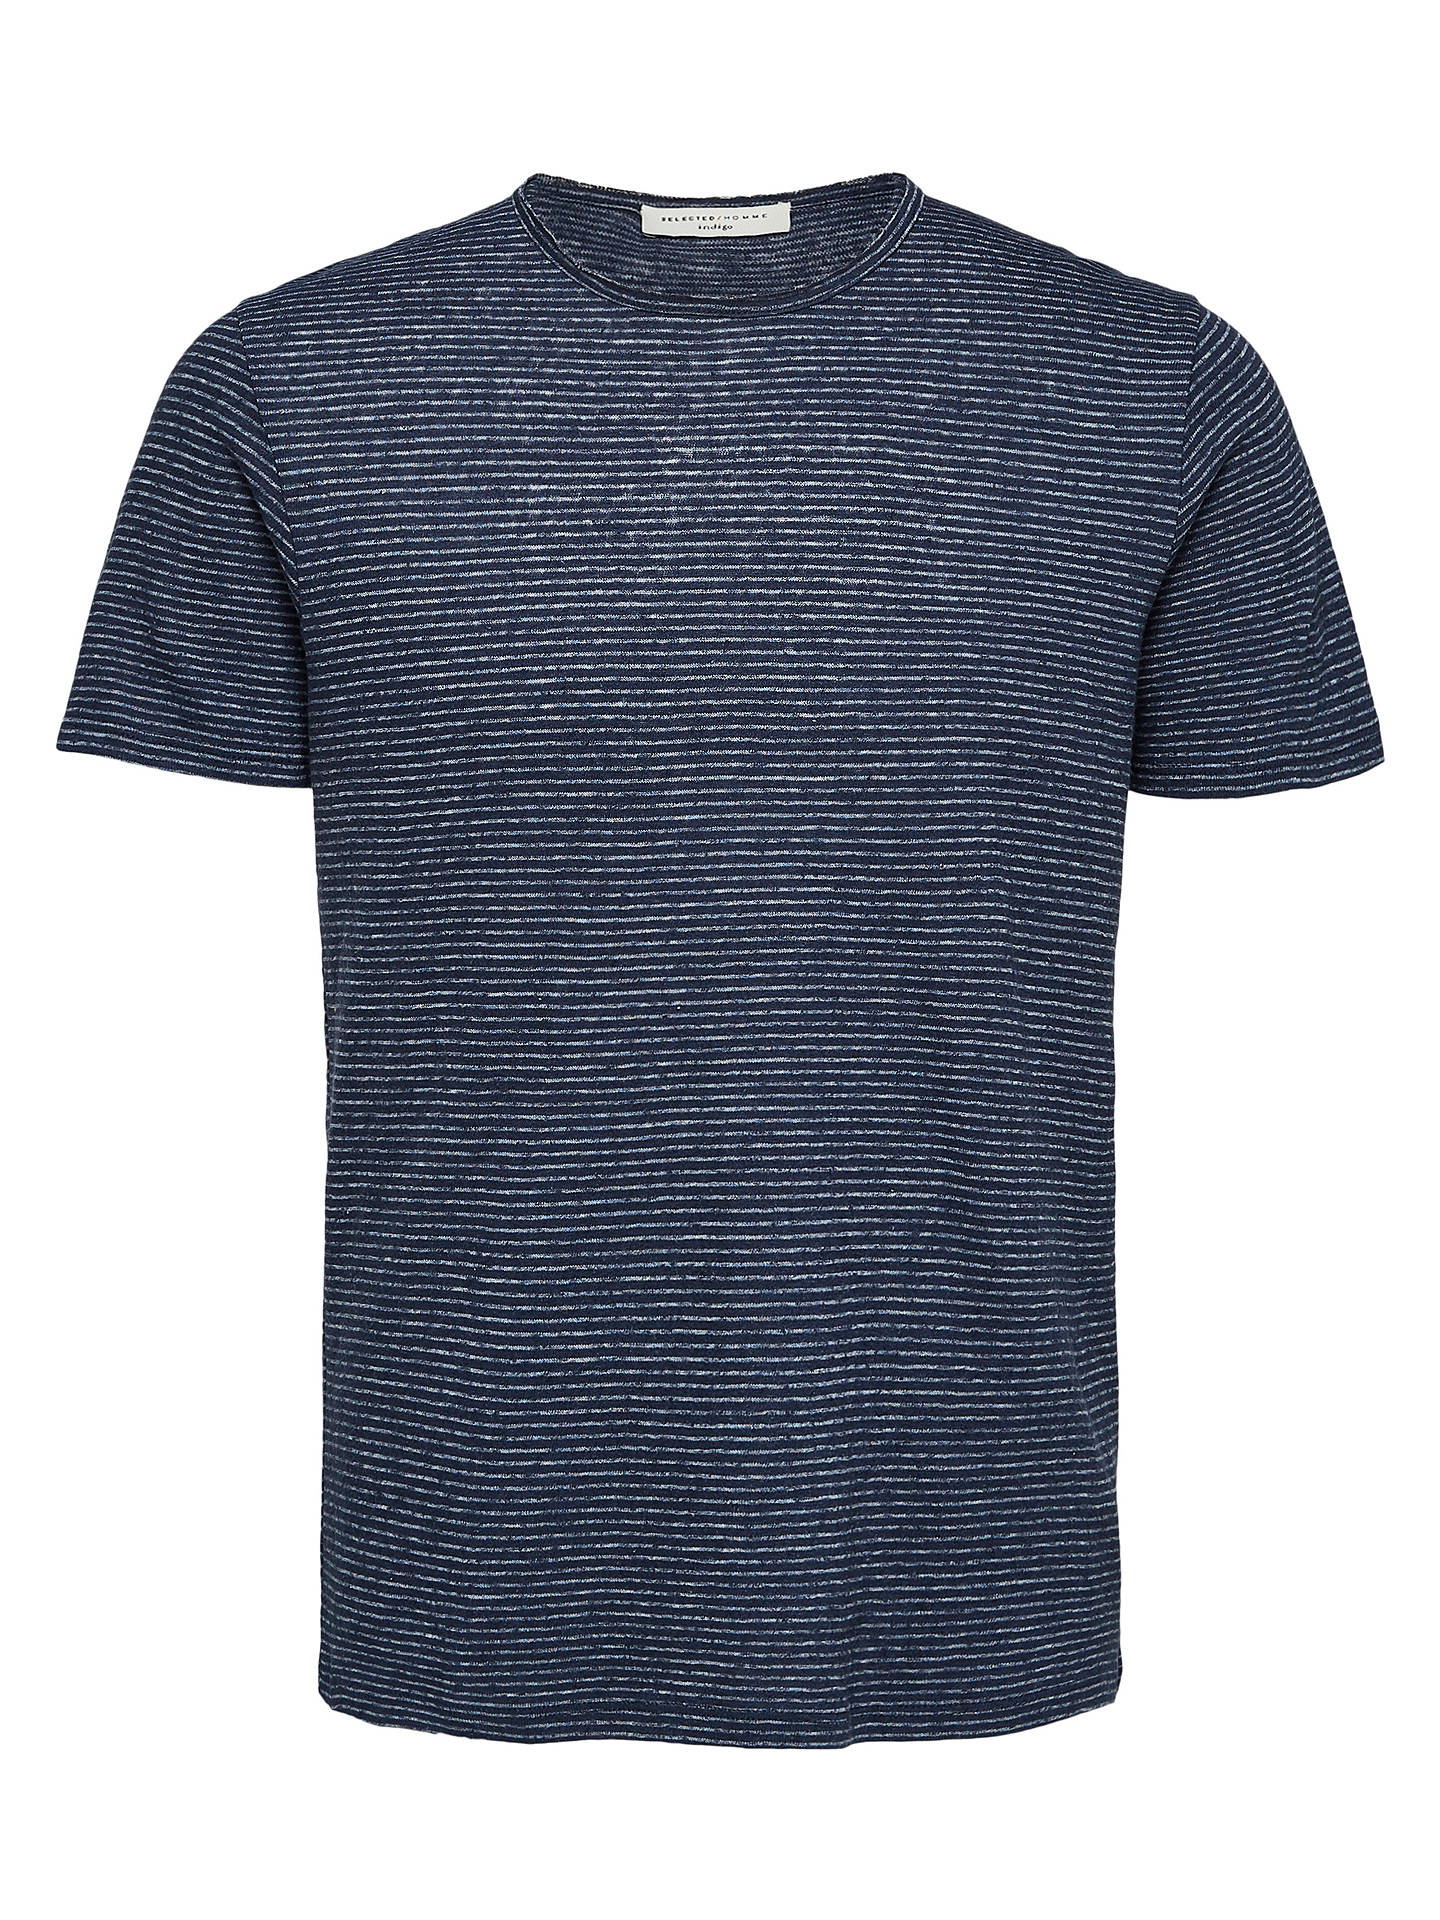 BuySelected Homme Shnlinen Short Sleeve Stripe T-Shirt, Dark Sapphire, M Online at johnlewis.com